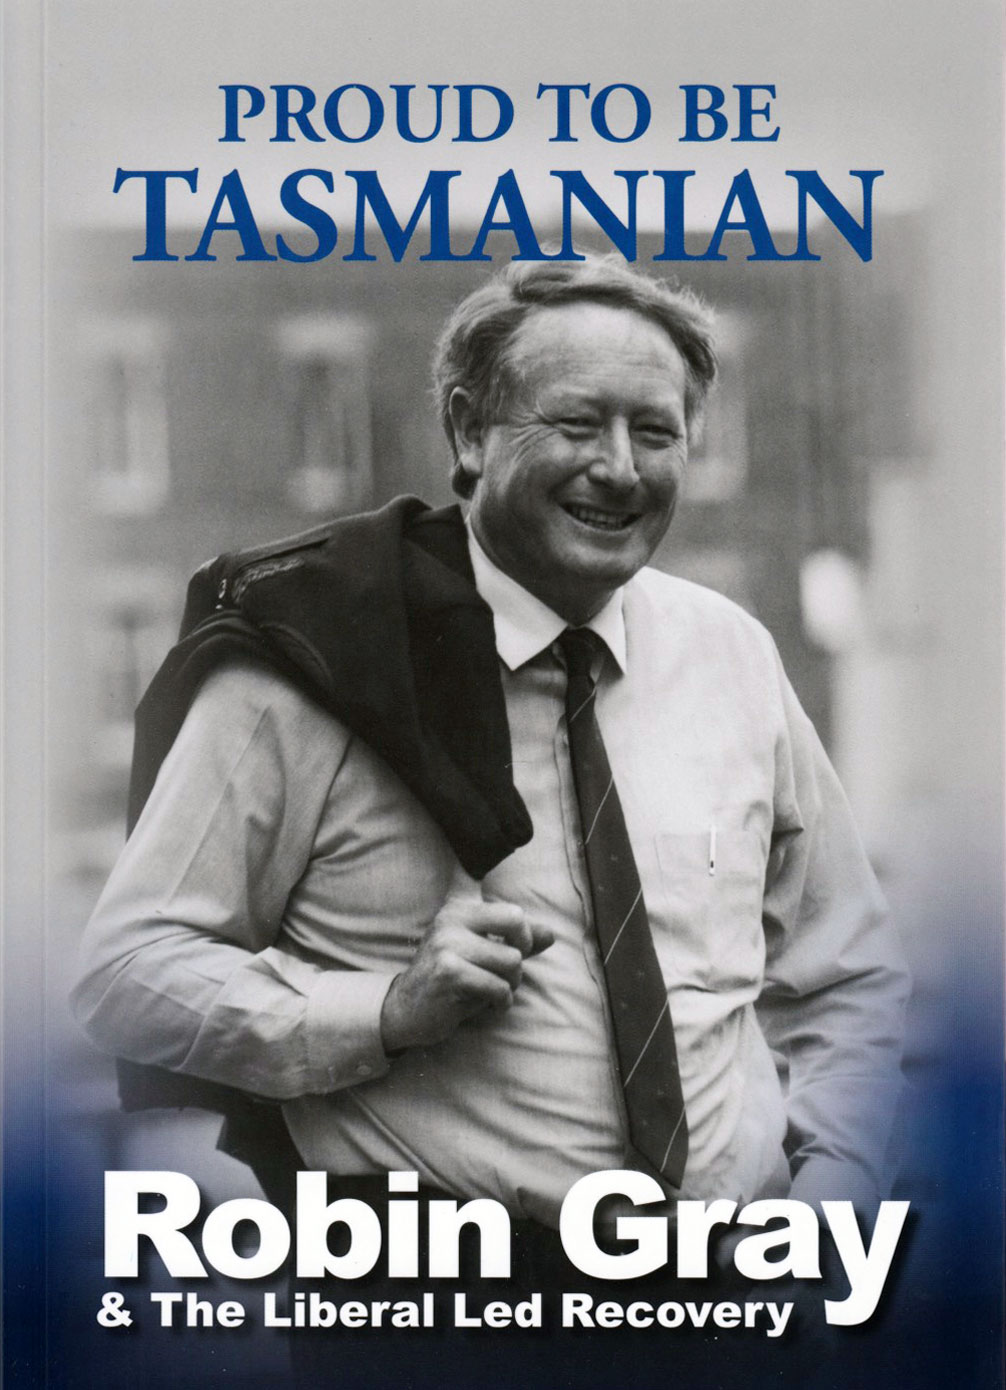 Proud to be Tasmanian